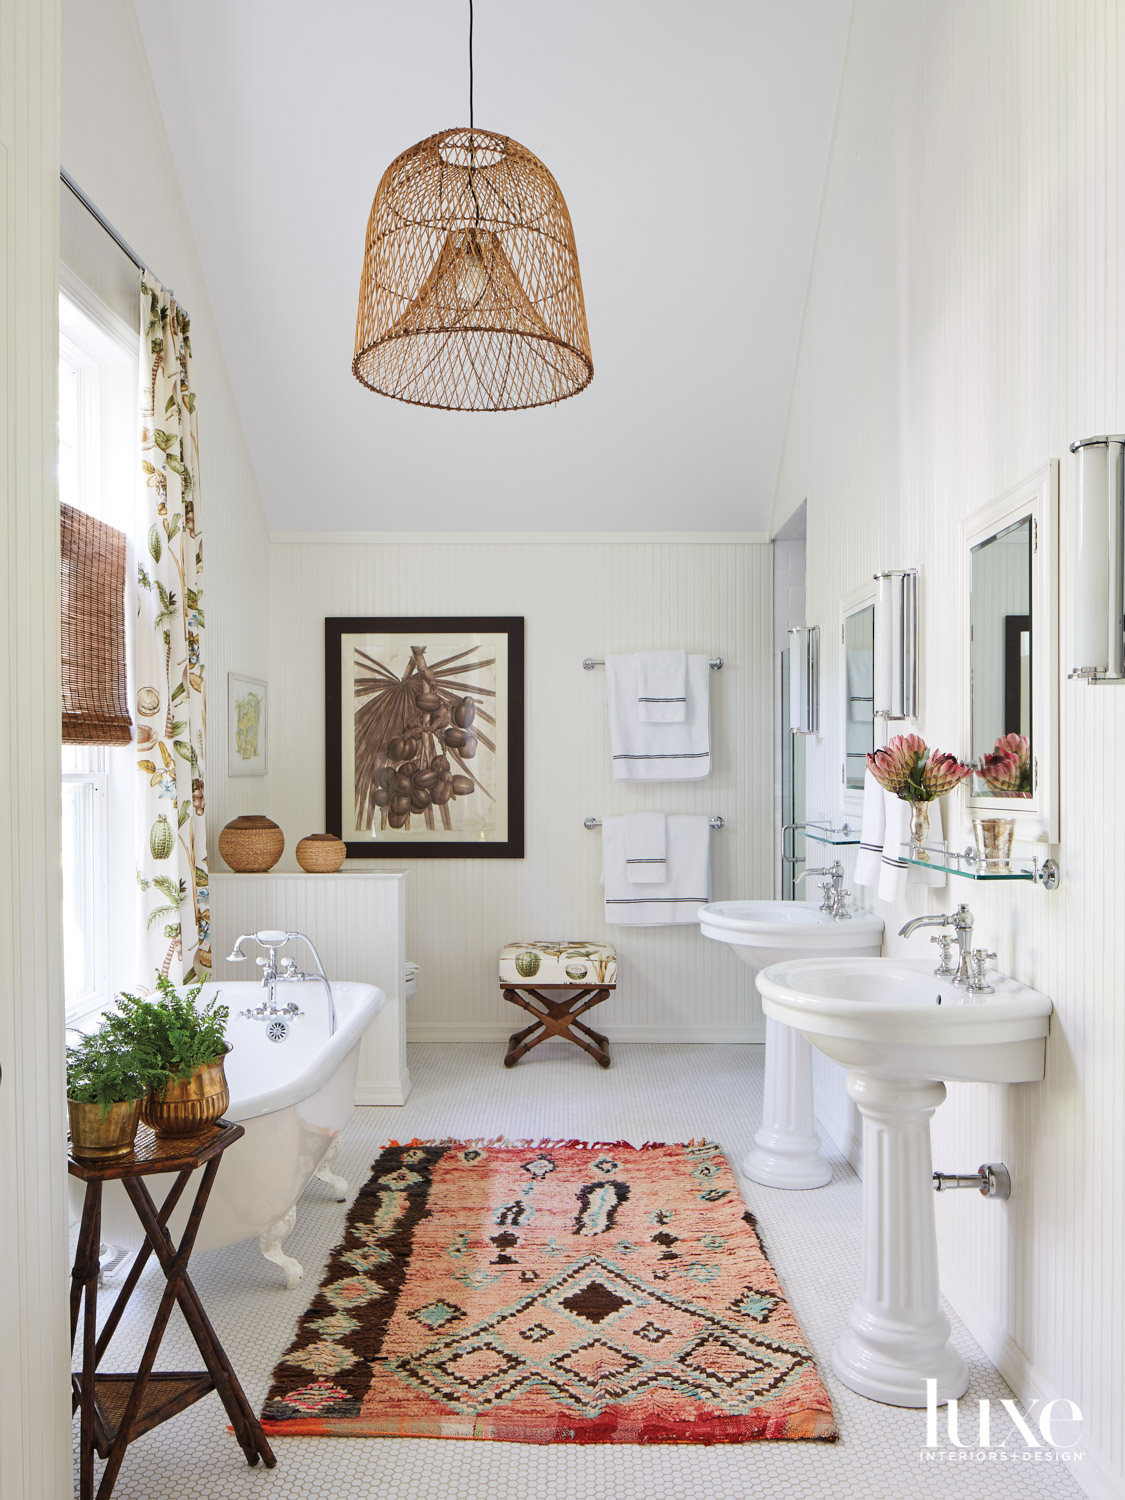 White tiled bathroom with vintage...